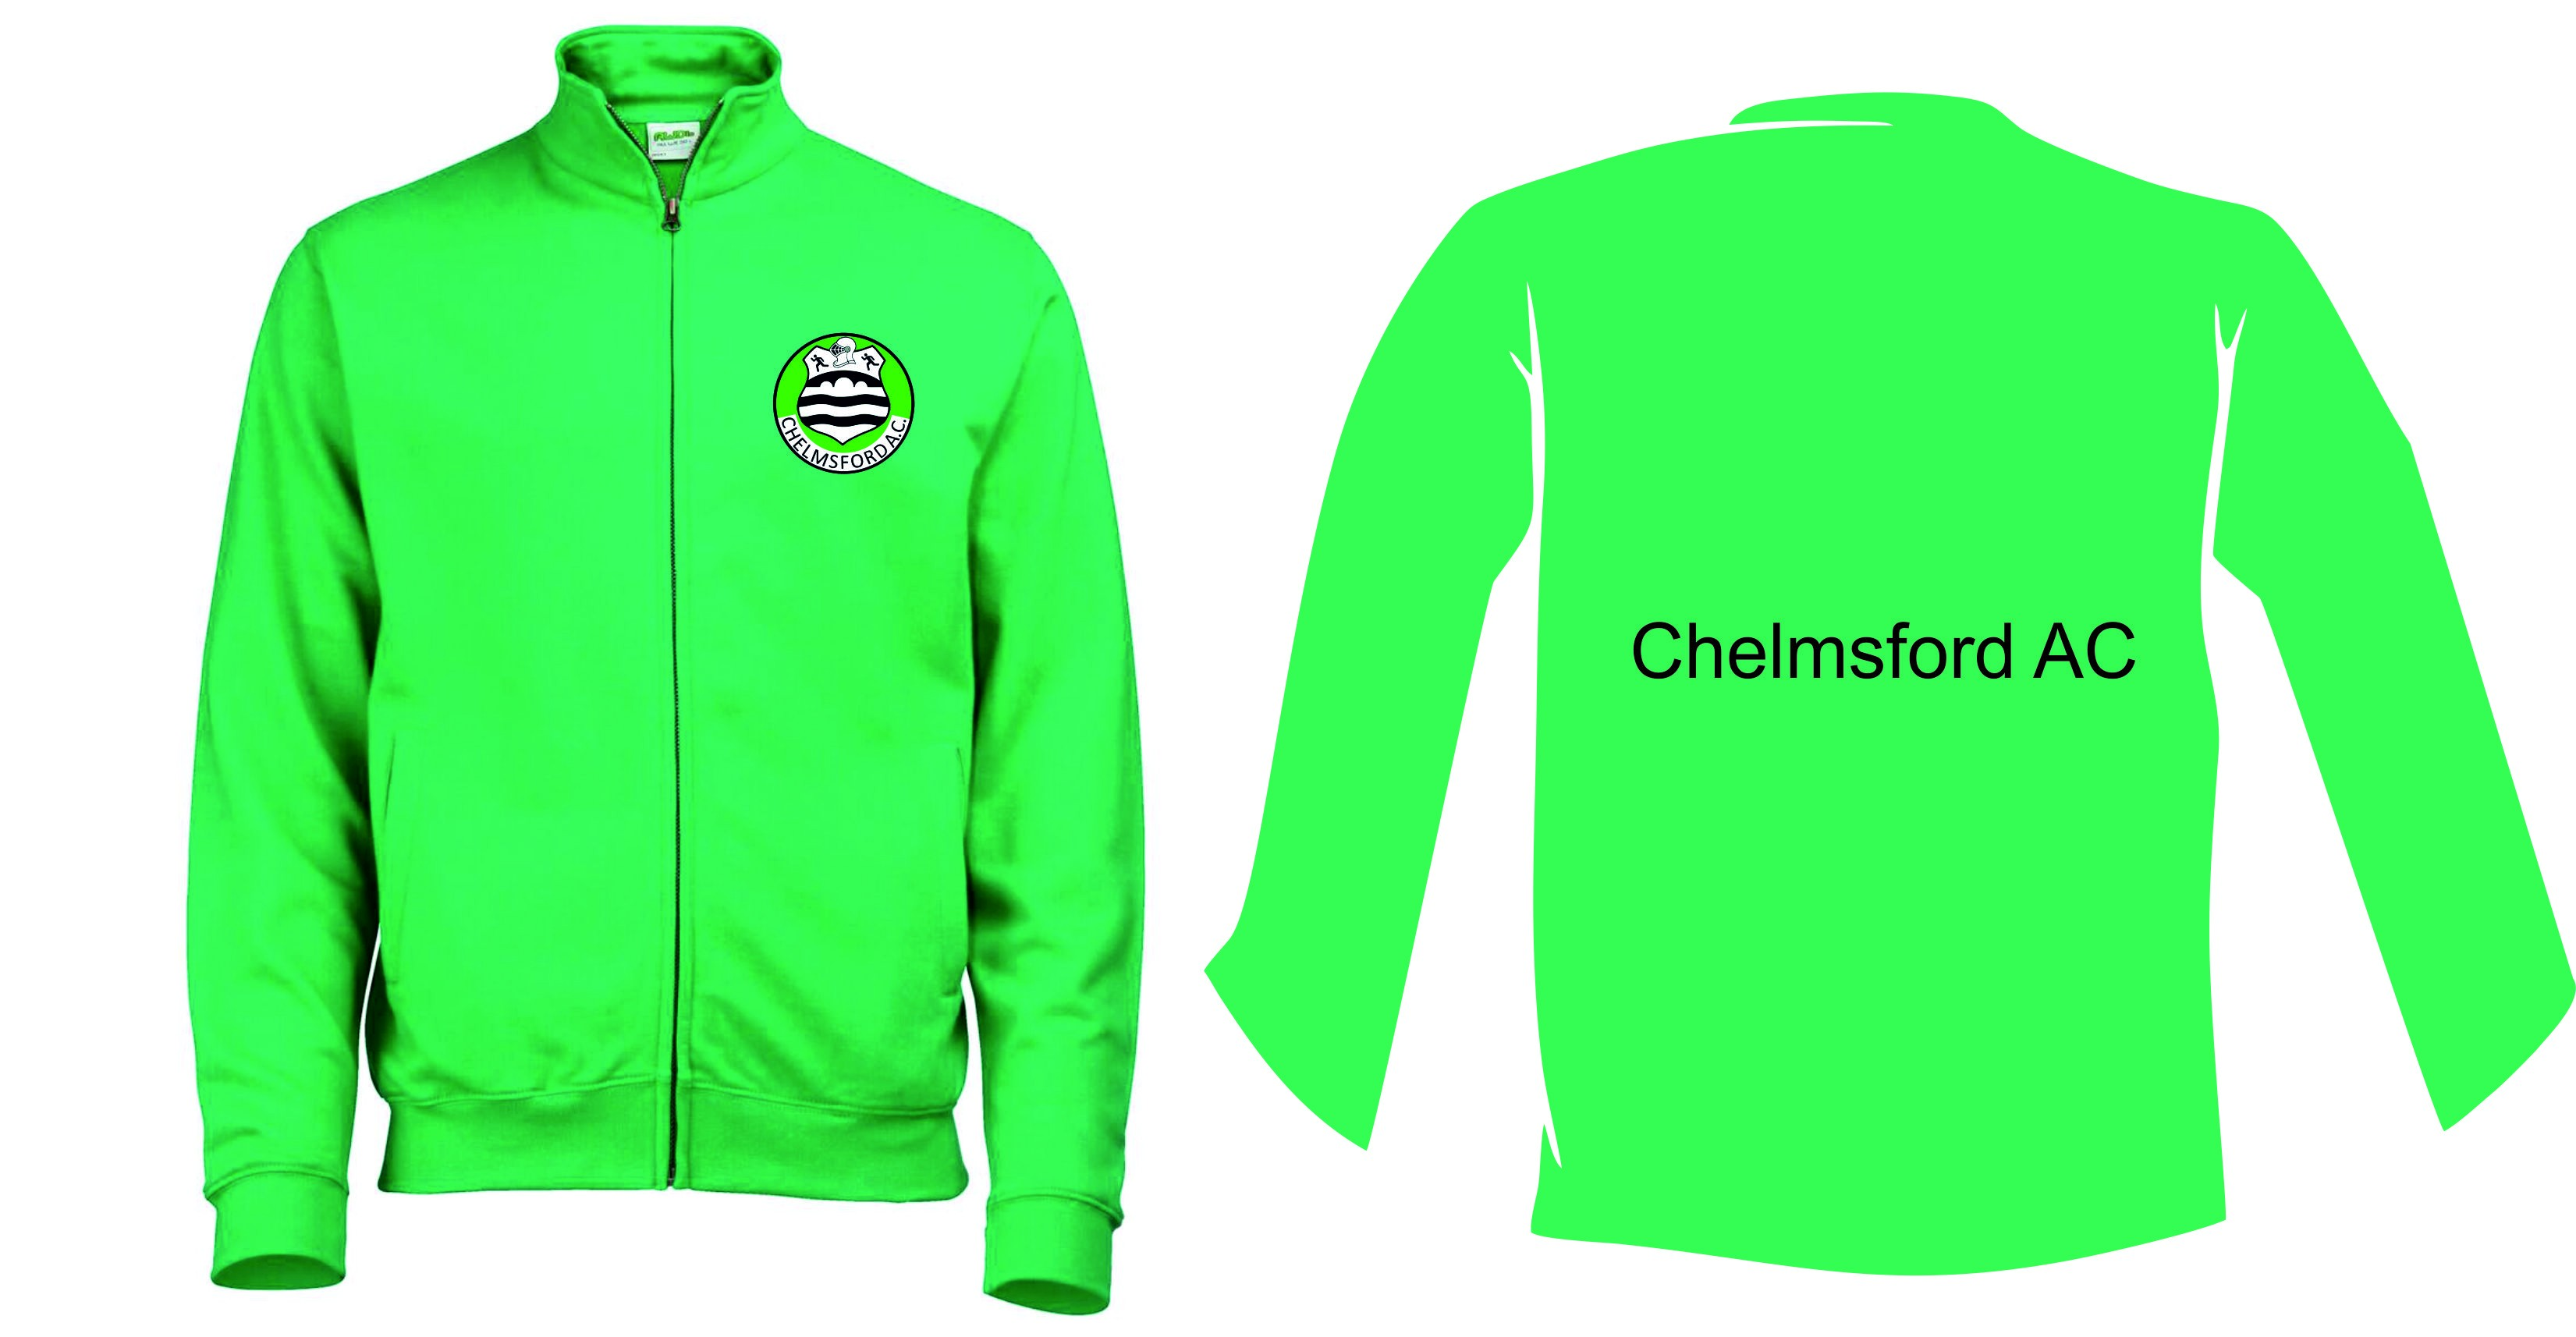 Chelmsford Athletics Club Men's / Unisex Adults Zip Up Sweatshirt Jacket